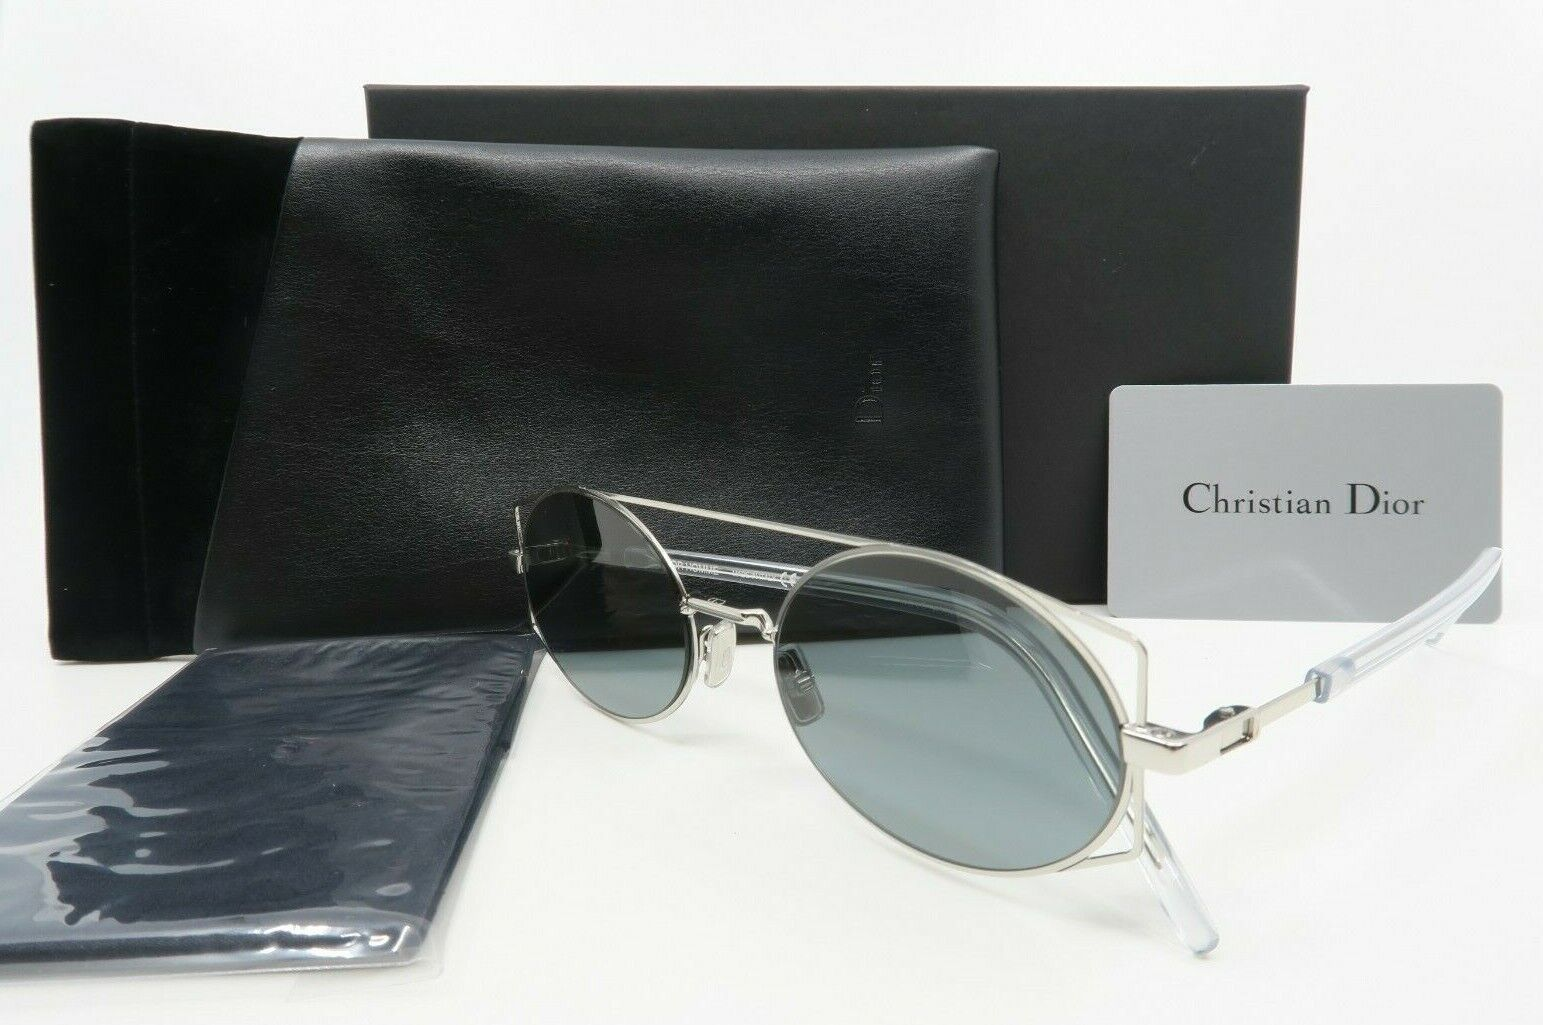 Dior Architectural 0101I 53mm New Silver Oval Sunglasses Made in Italy with box